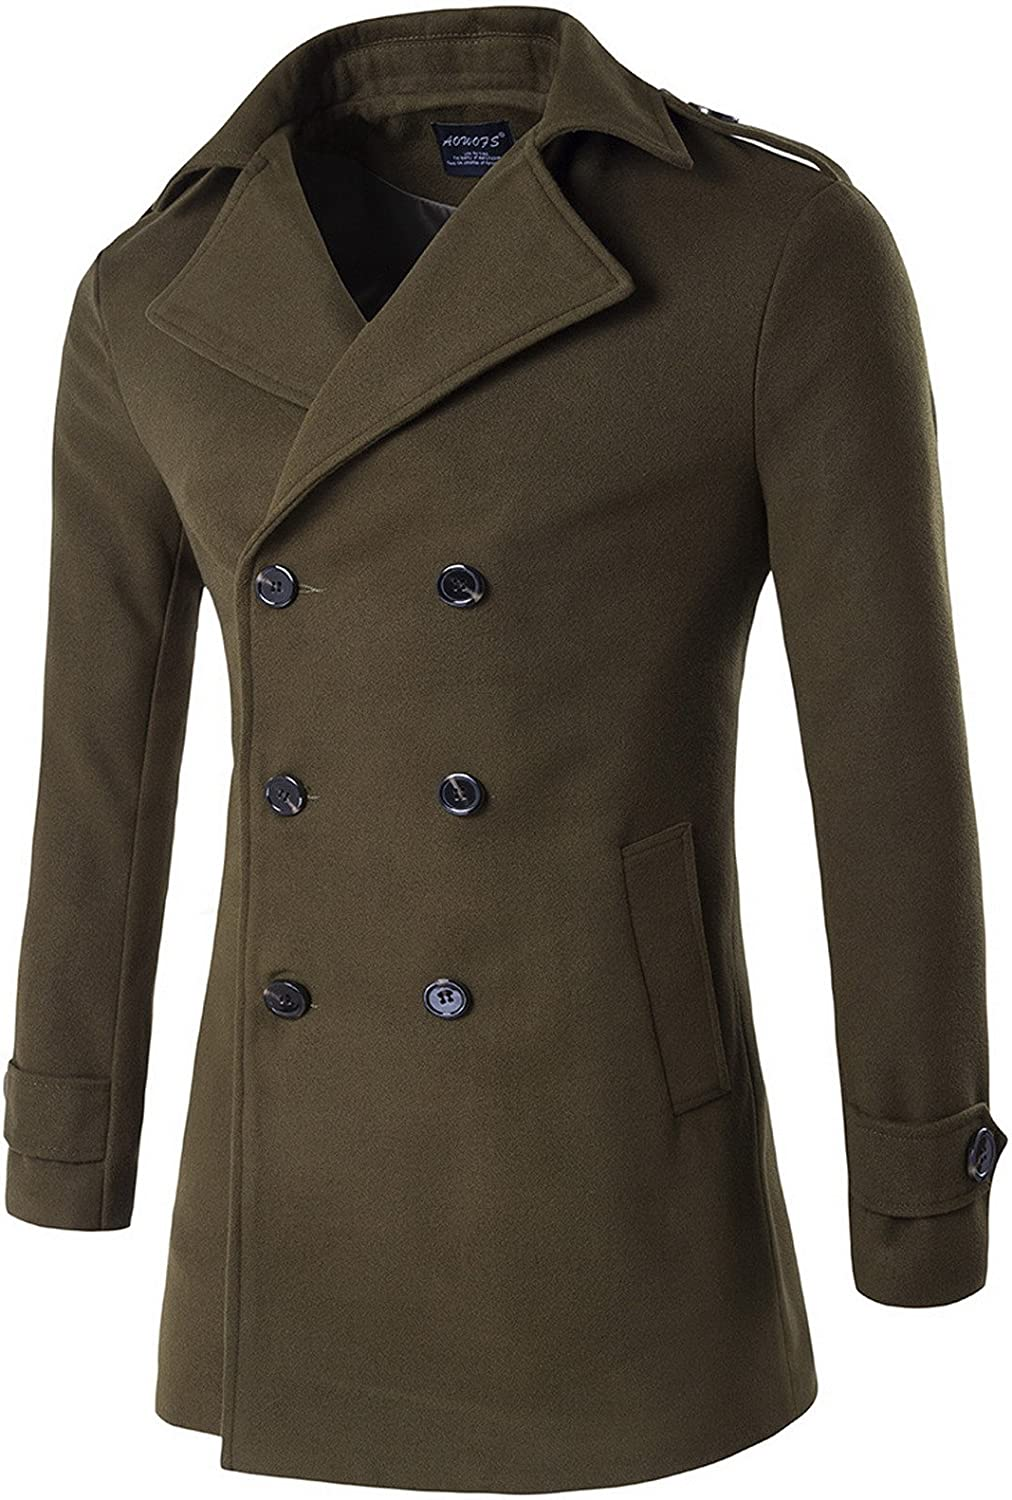 AOWOFS Men's Mid Long Coat Winter Double Breasted Military Overcoat Warm Trench Coat